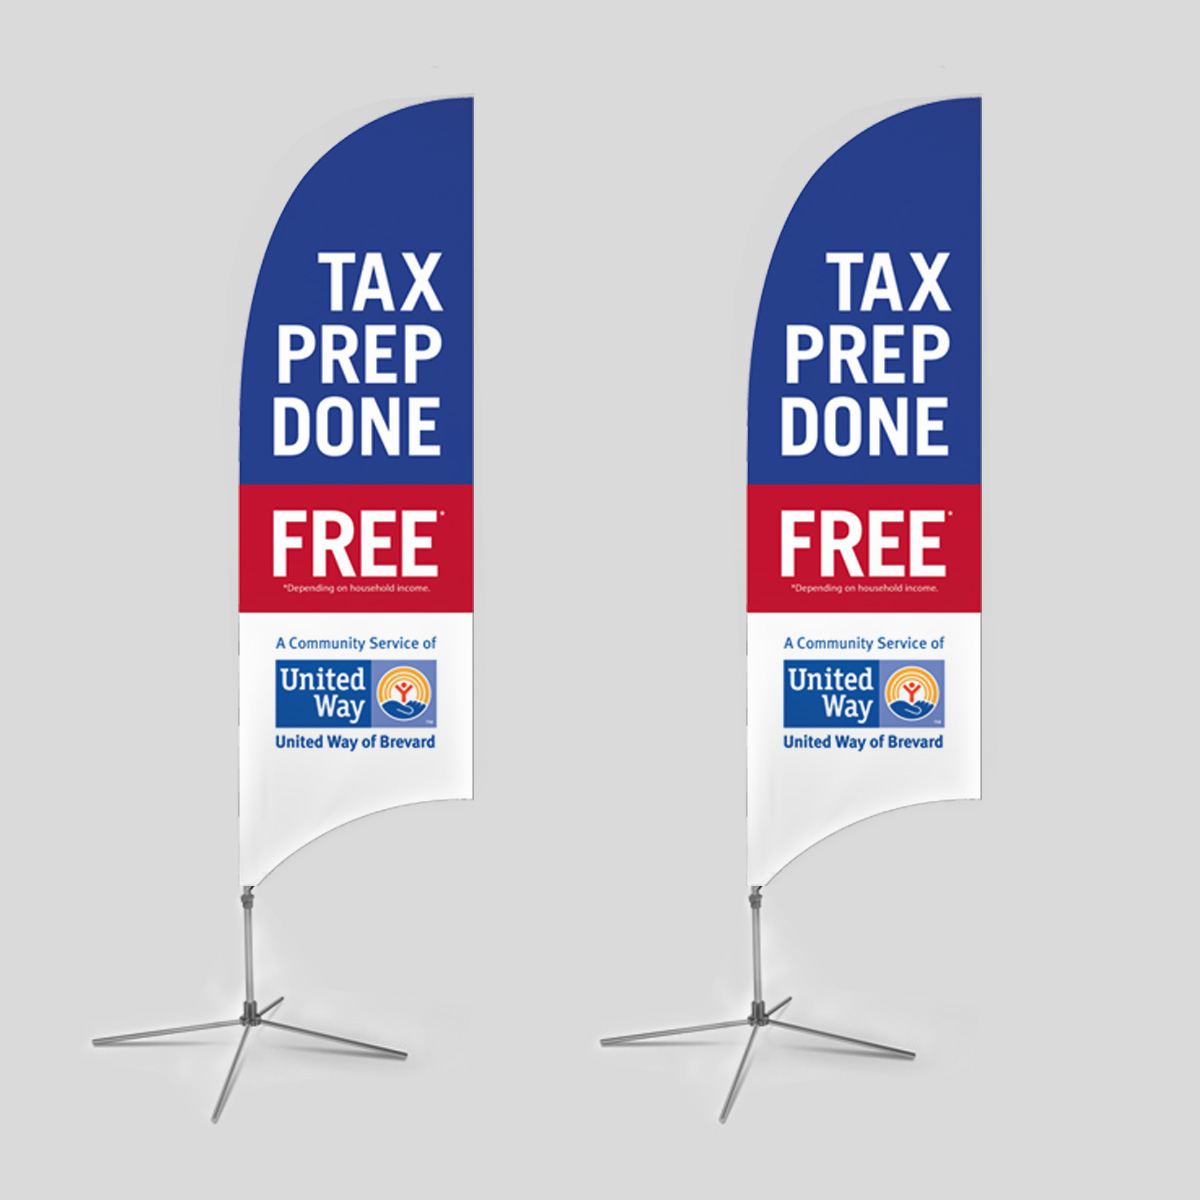 United way tax prep flags